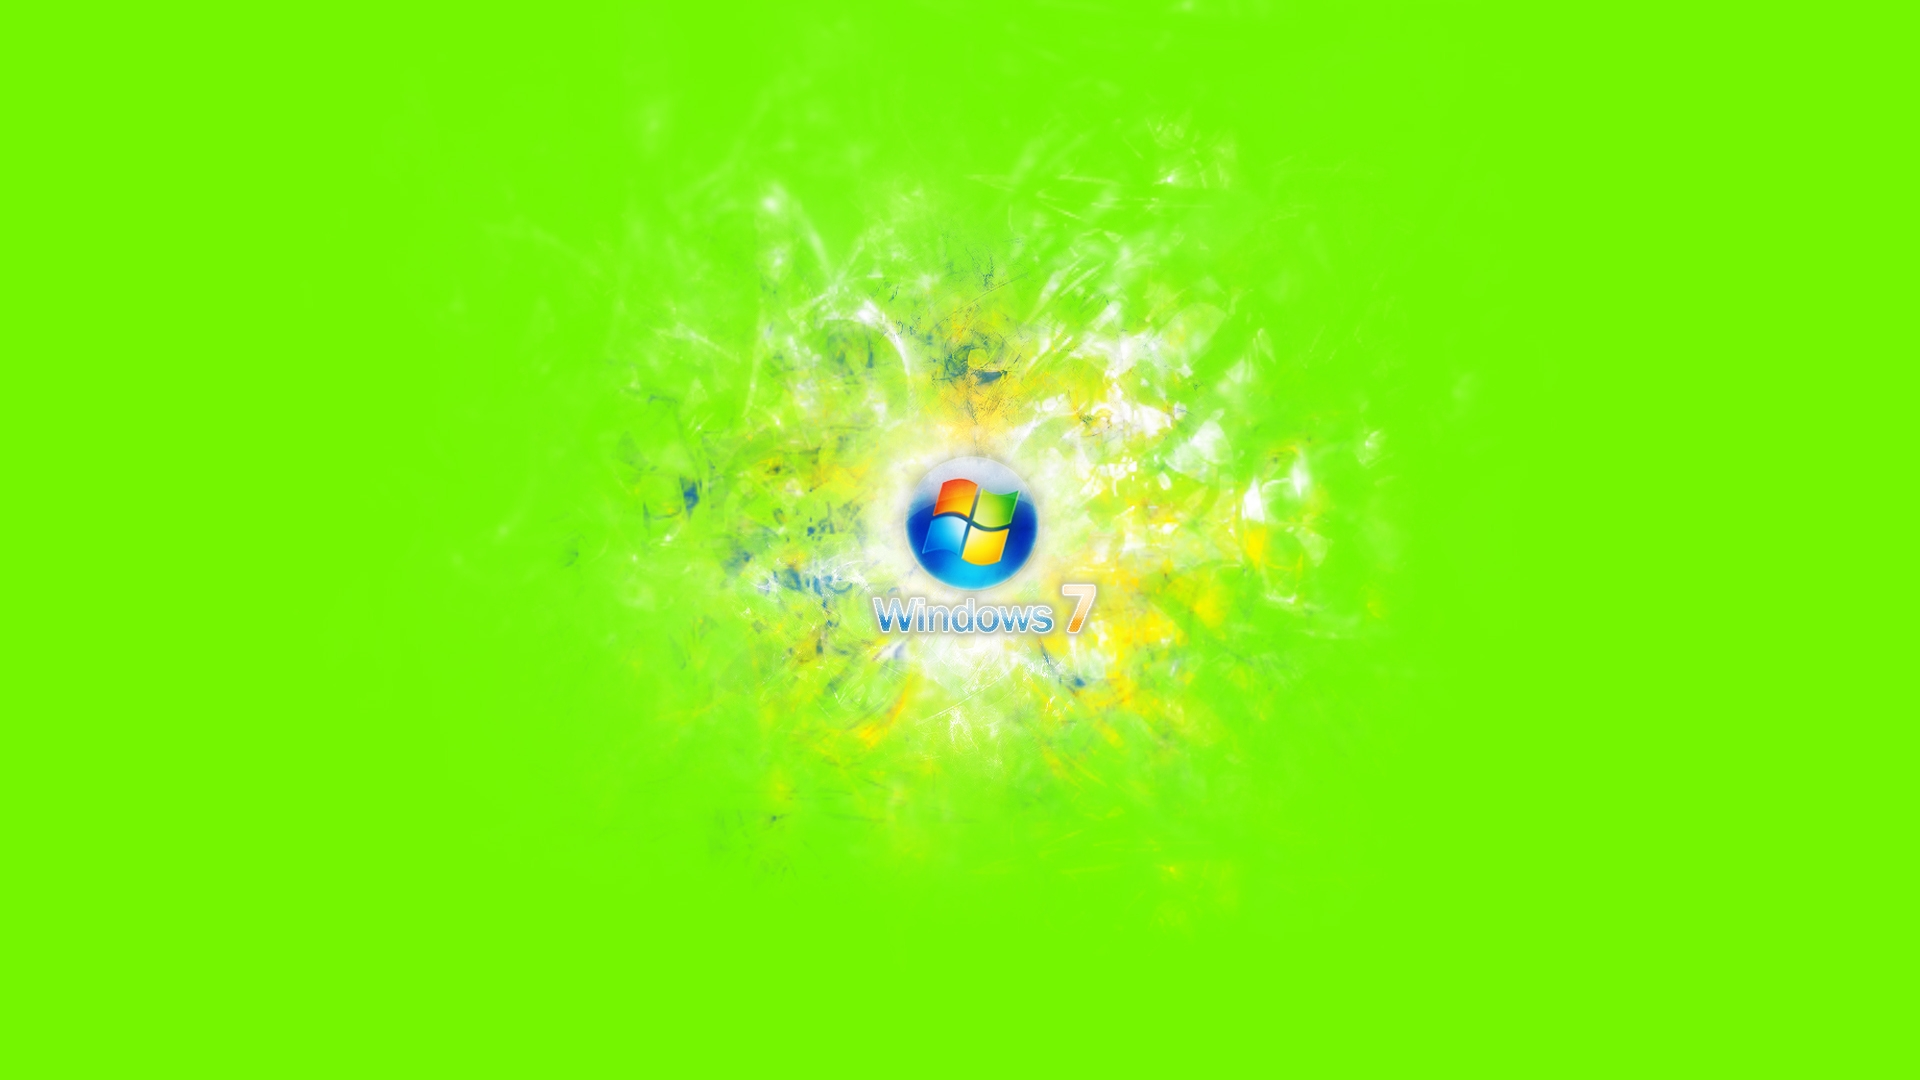 3d Hd Wallpapers For Windows 7 Free Download Windows 7 Bright Wallpaper Hd Wallpapers